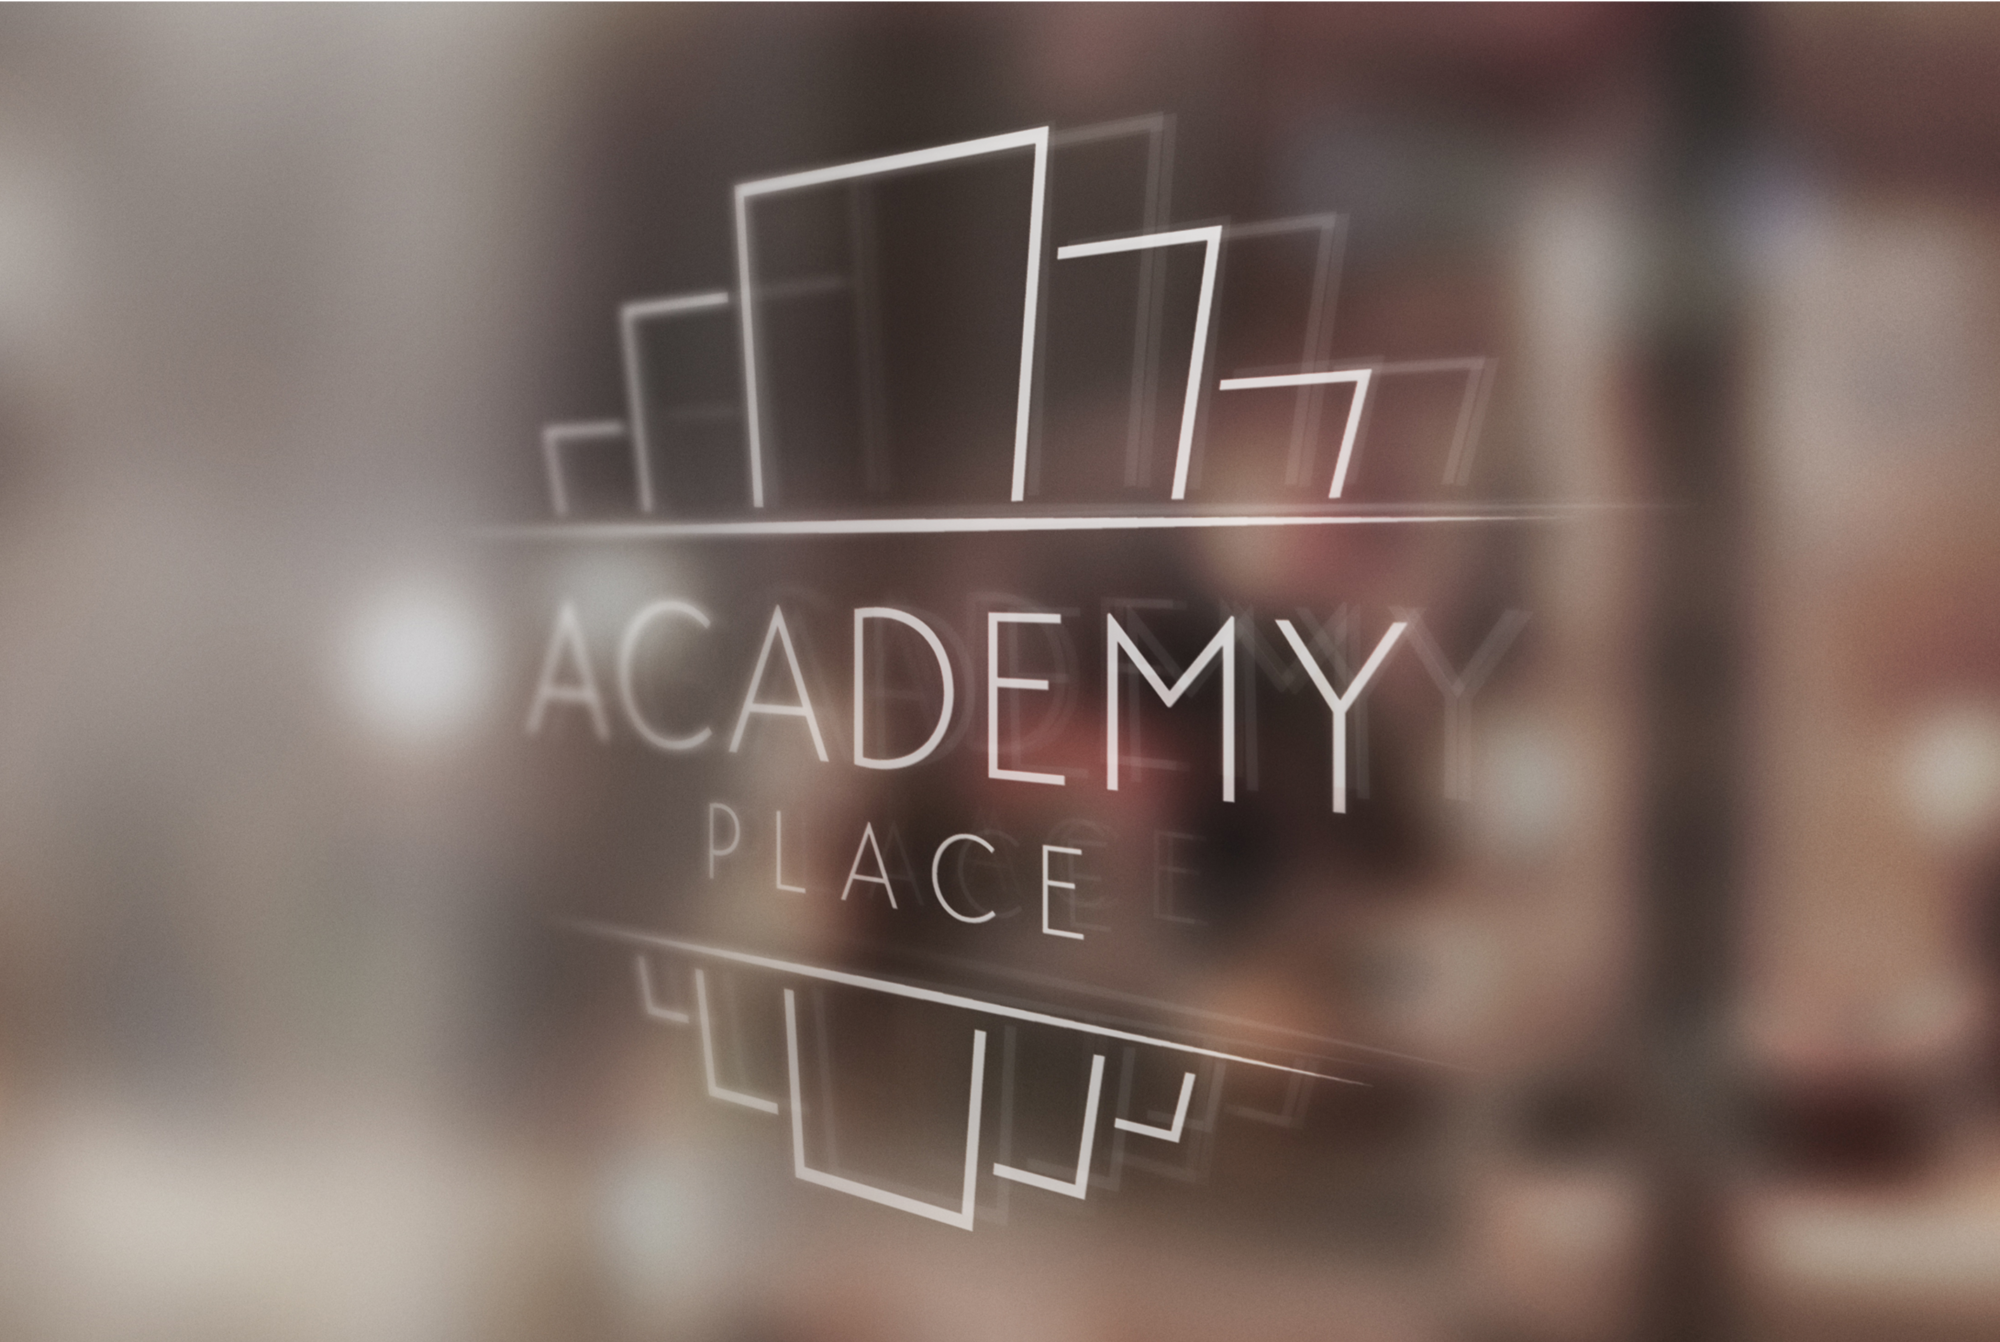 Academy Place